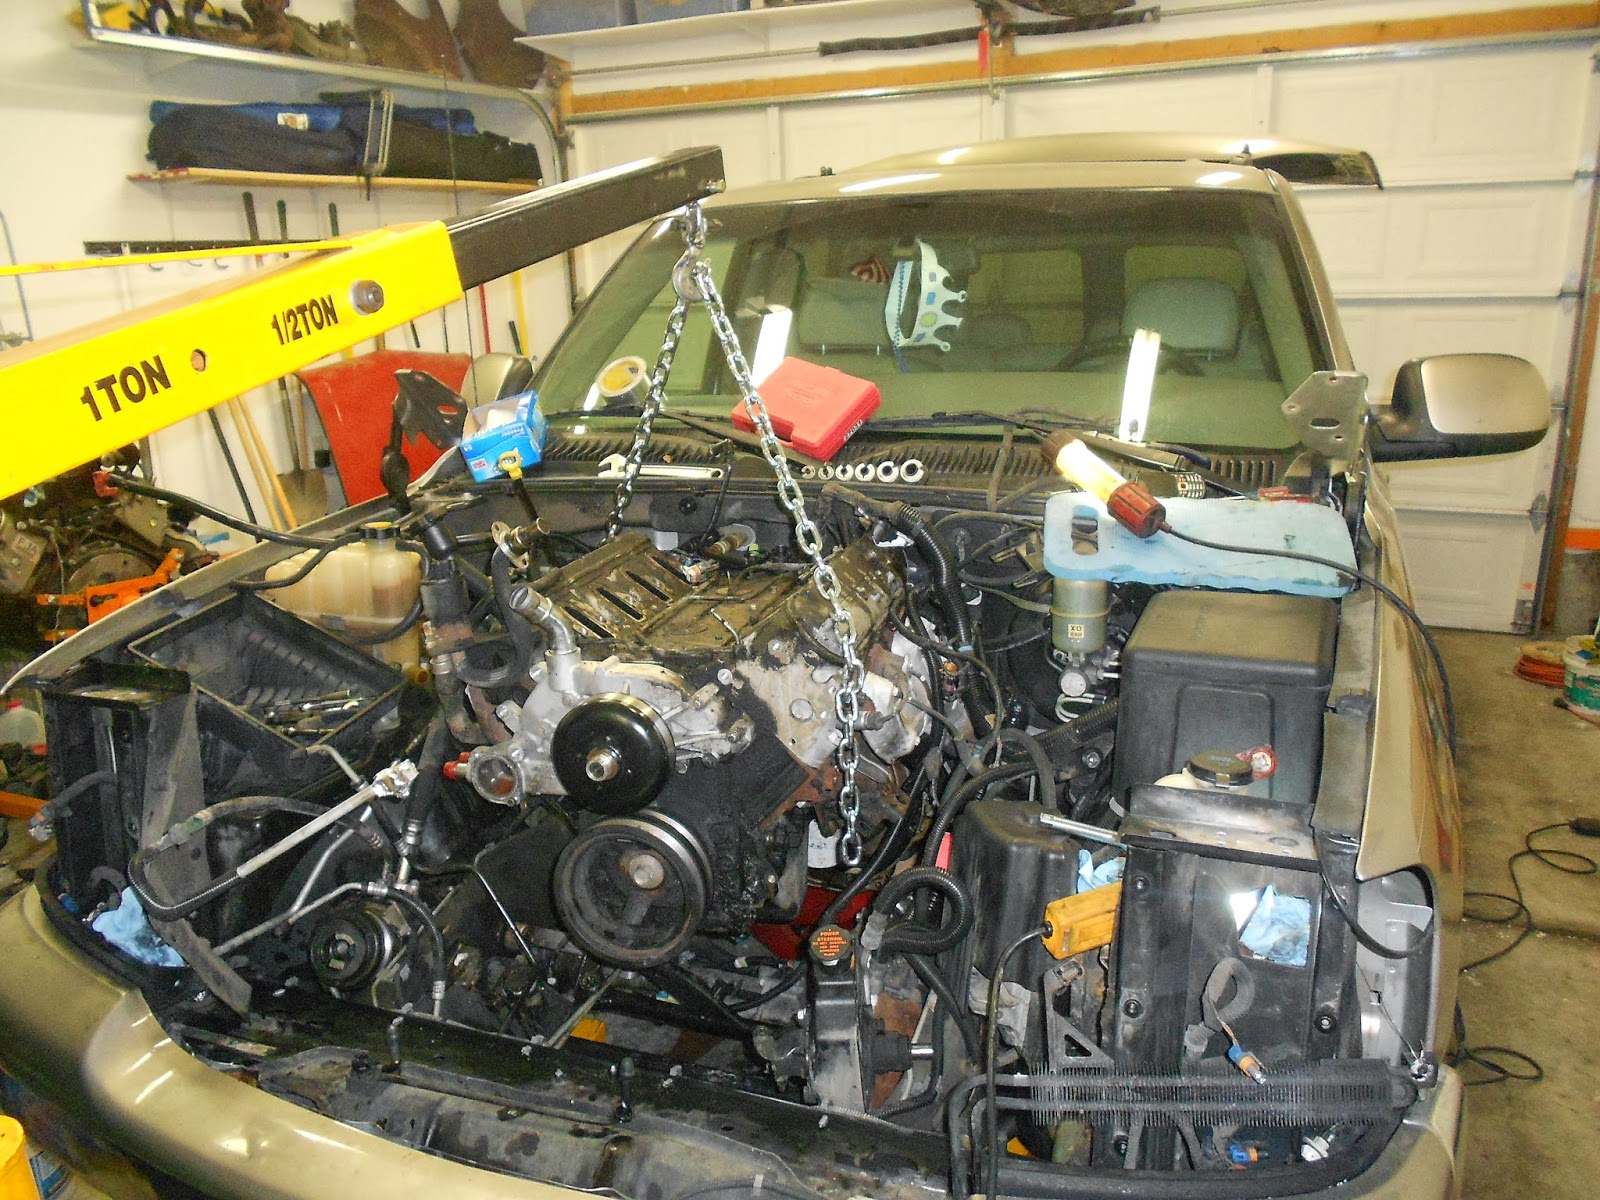 medium resolution of vw bug engine removal diagram wiring library vw engine tin diagram it was really nice being